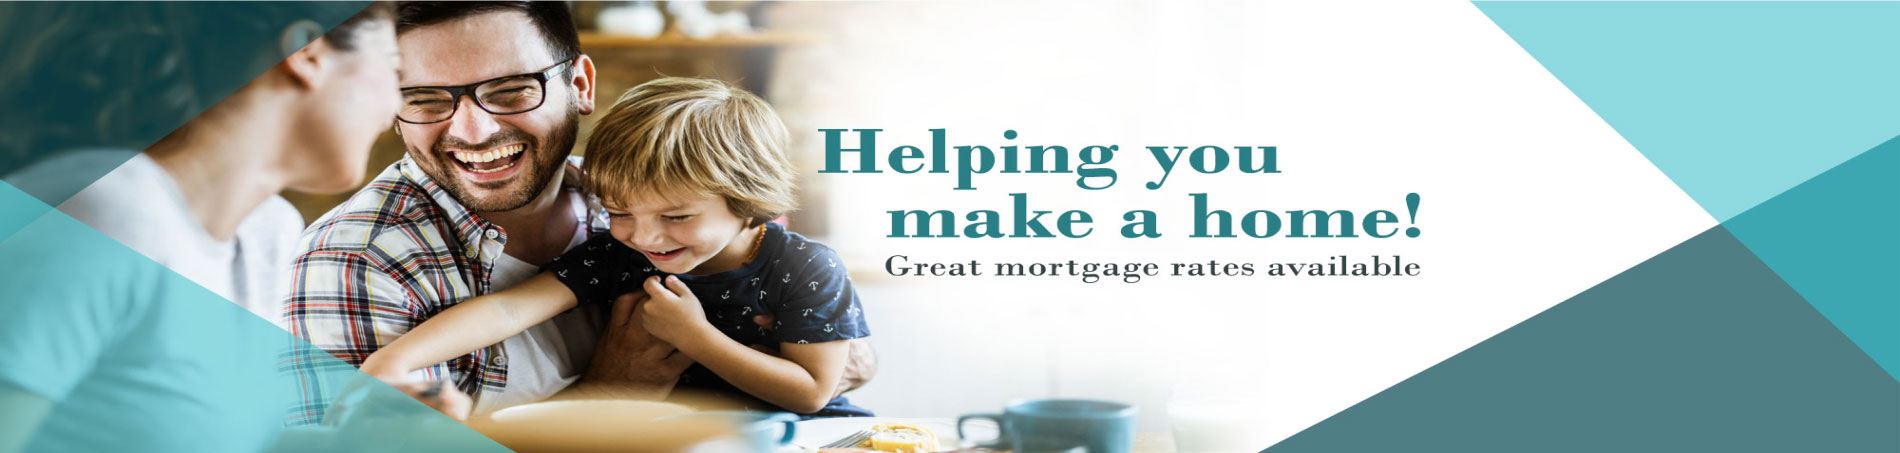 Helping you make a home! Great mortgage rates available.